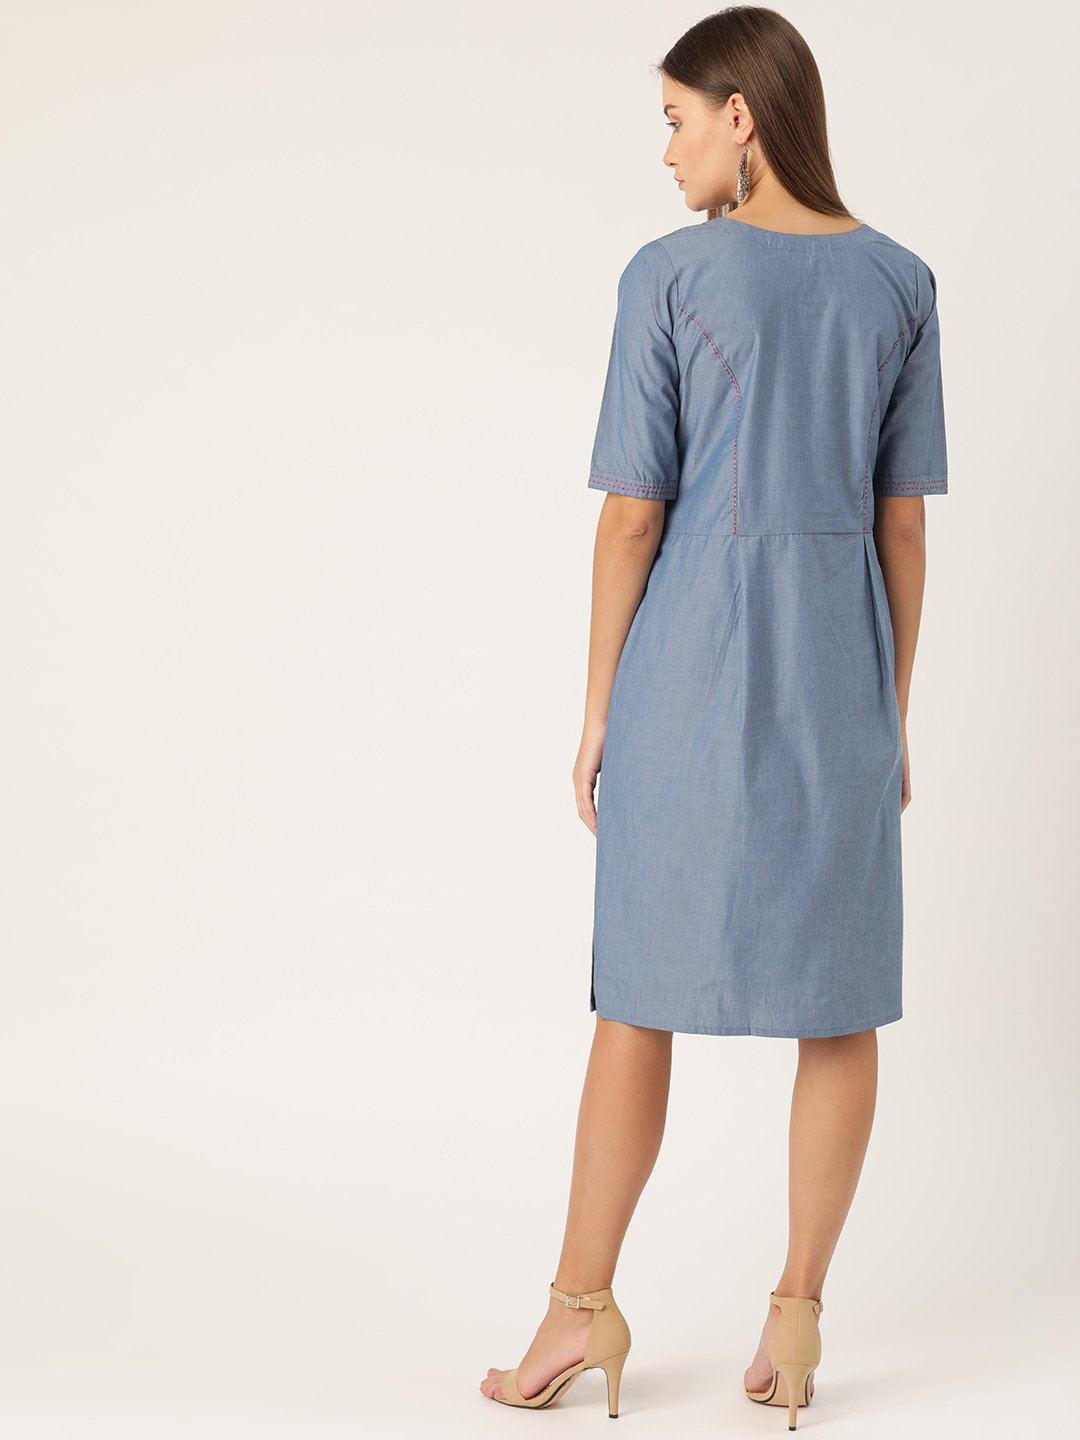 Denim Dress With Pocket